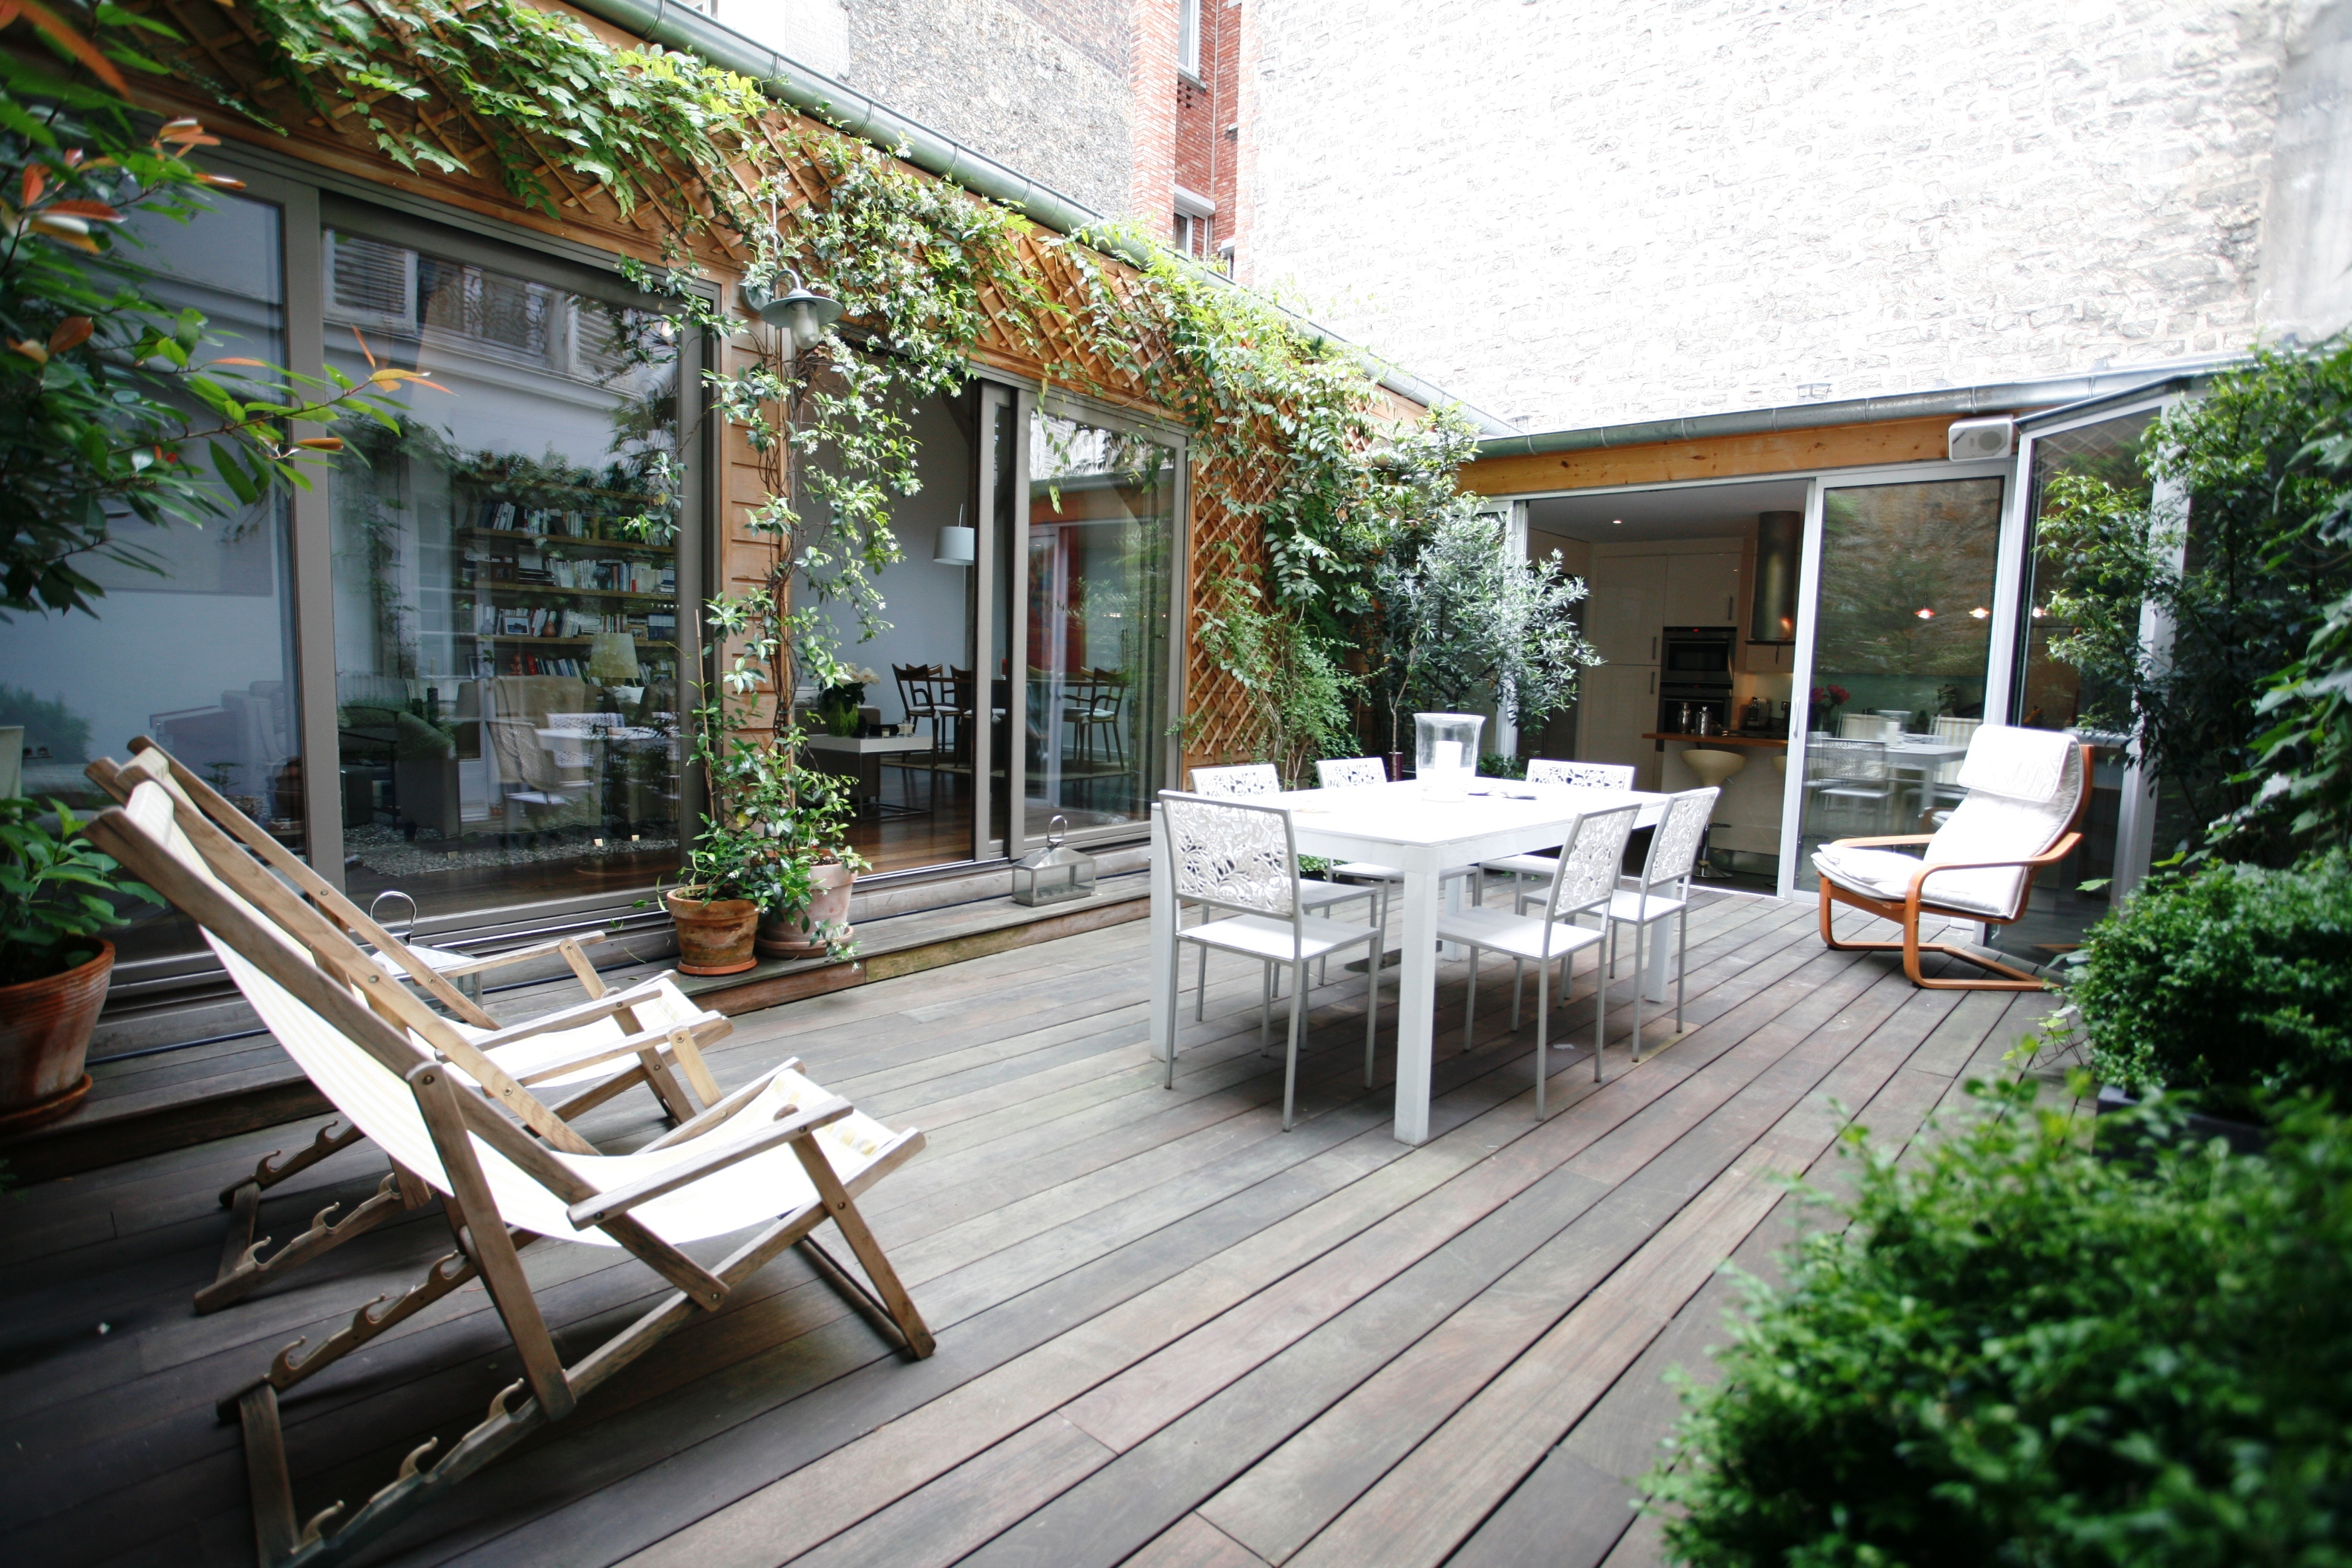 Achat appartement terrasse paris for Appartement avec terrasse paris